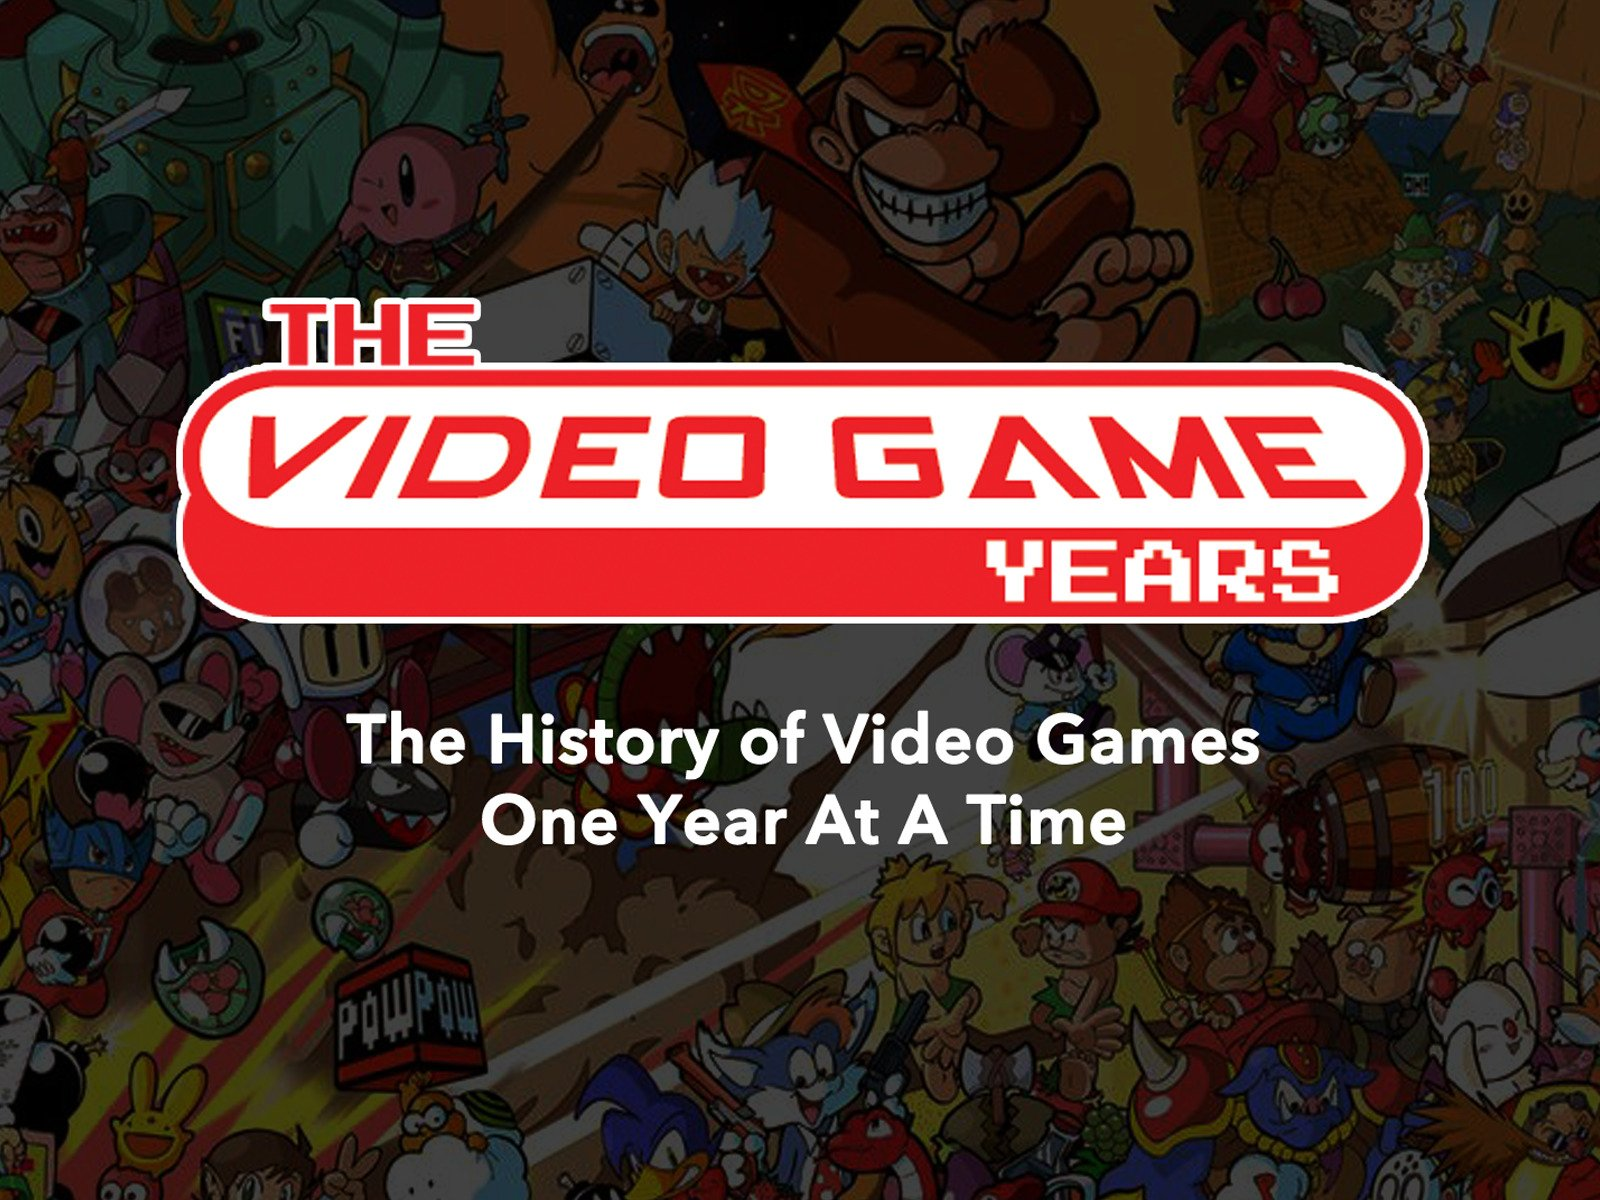 Amazon.com: Watch The Video Game Years | Prime Video